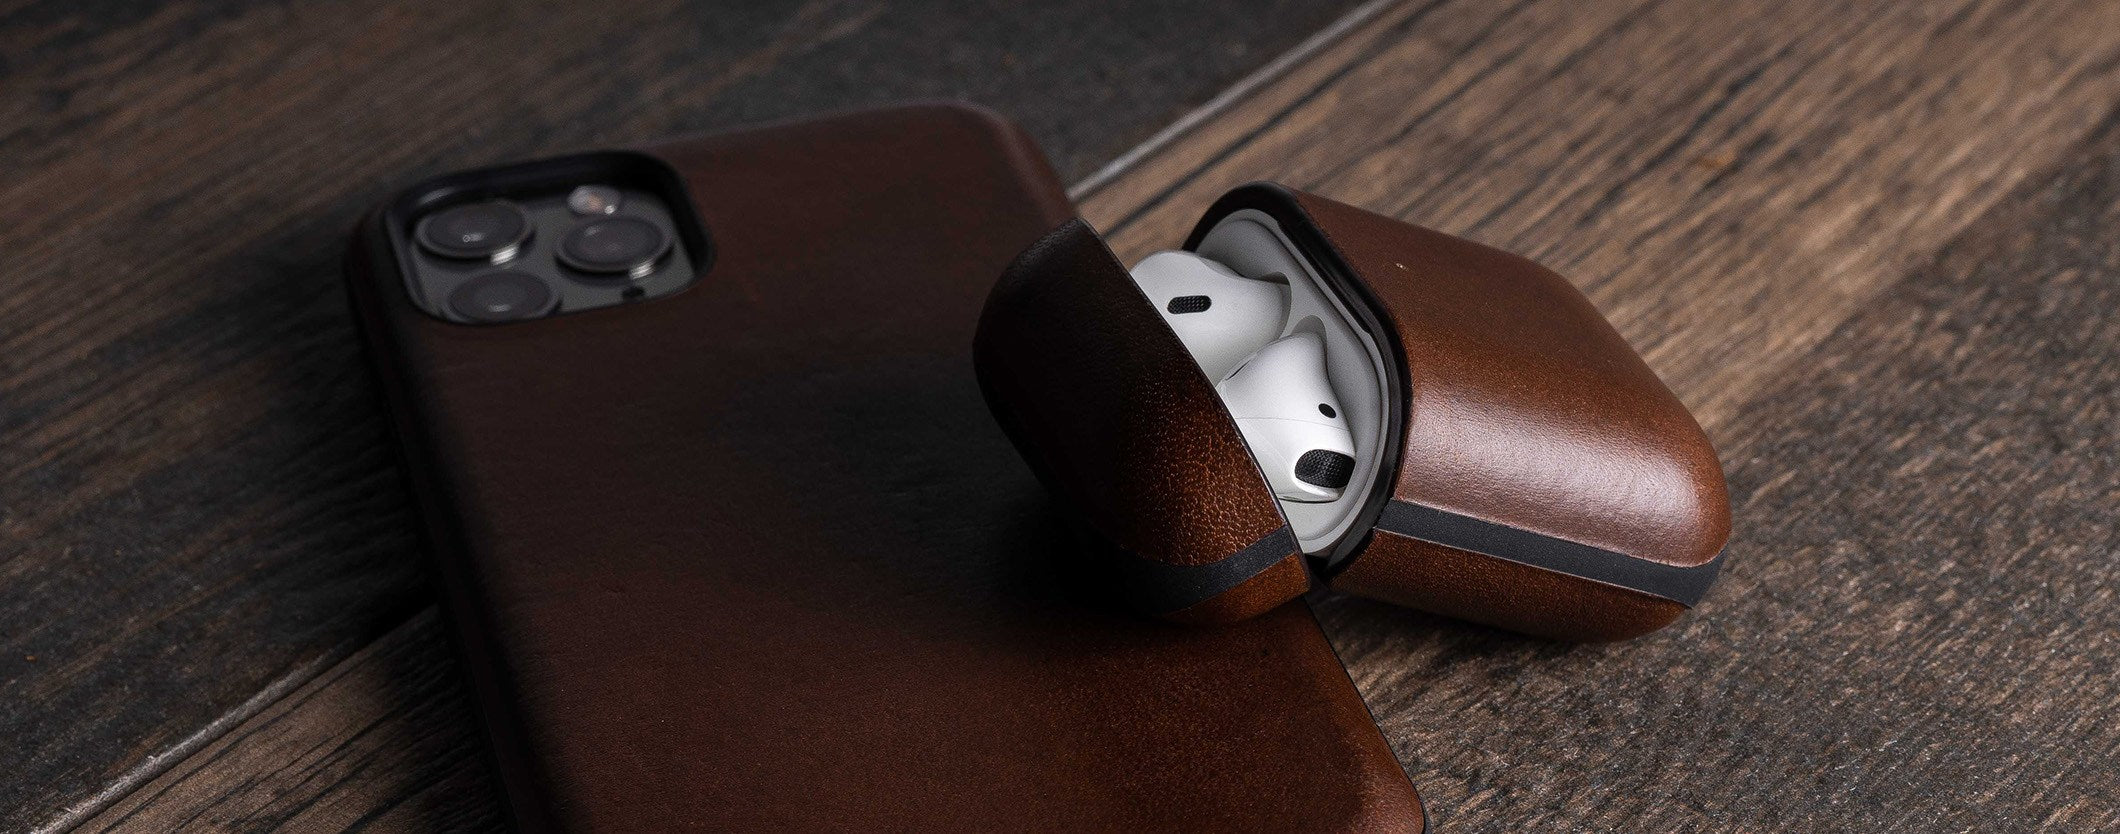 Open Rugged Case in Rustic Brown displaying Apple AirPods sitting on iPhone 11 Pro